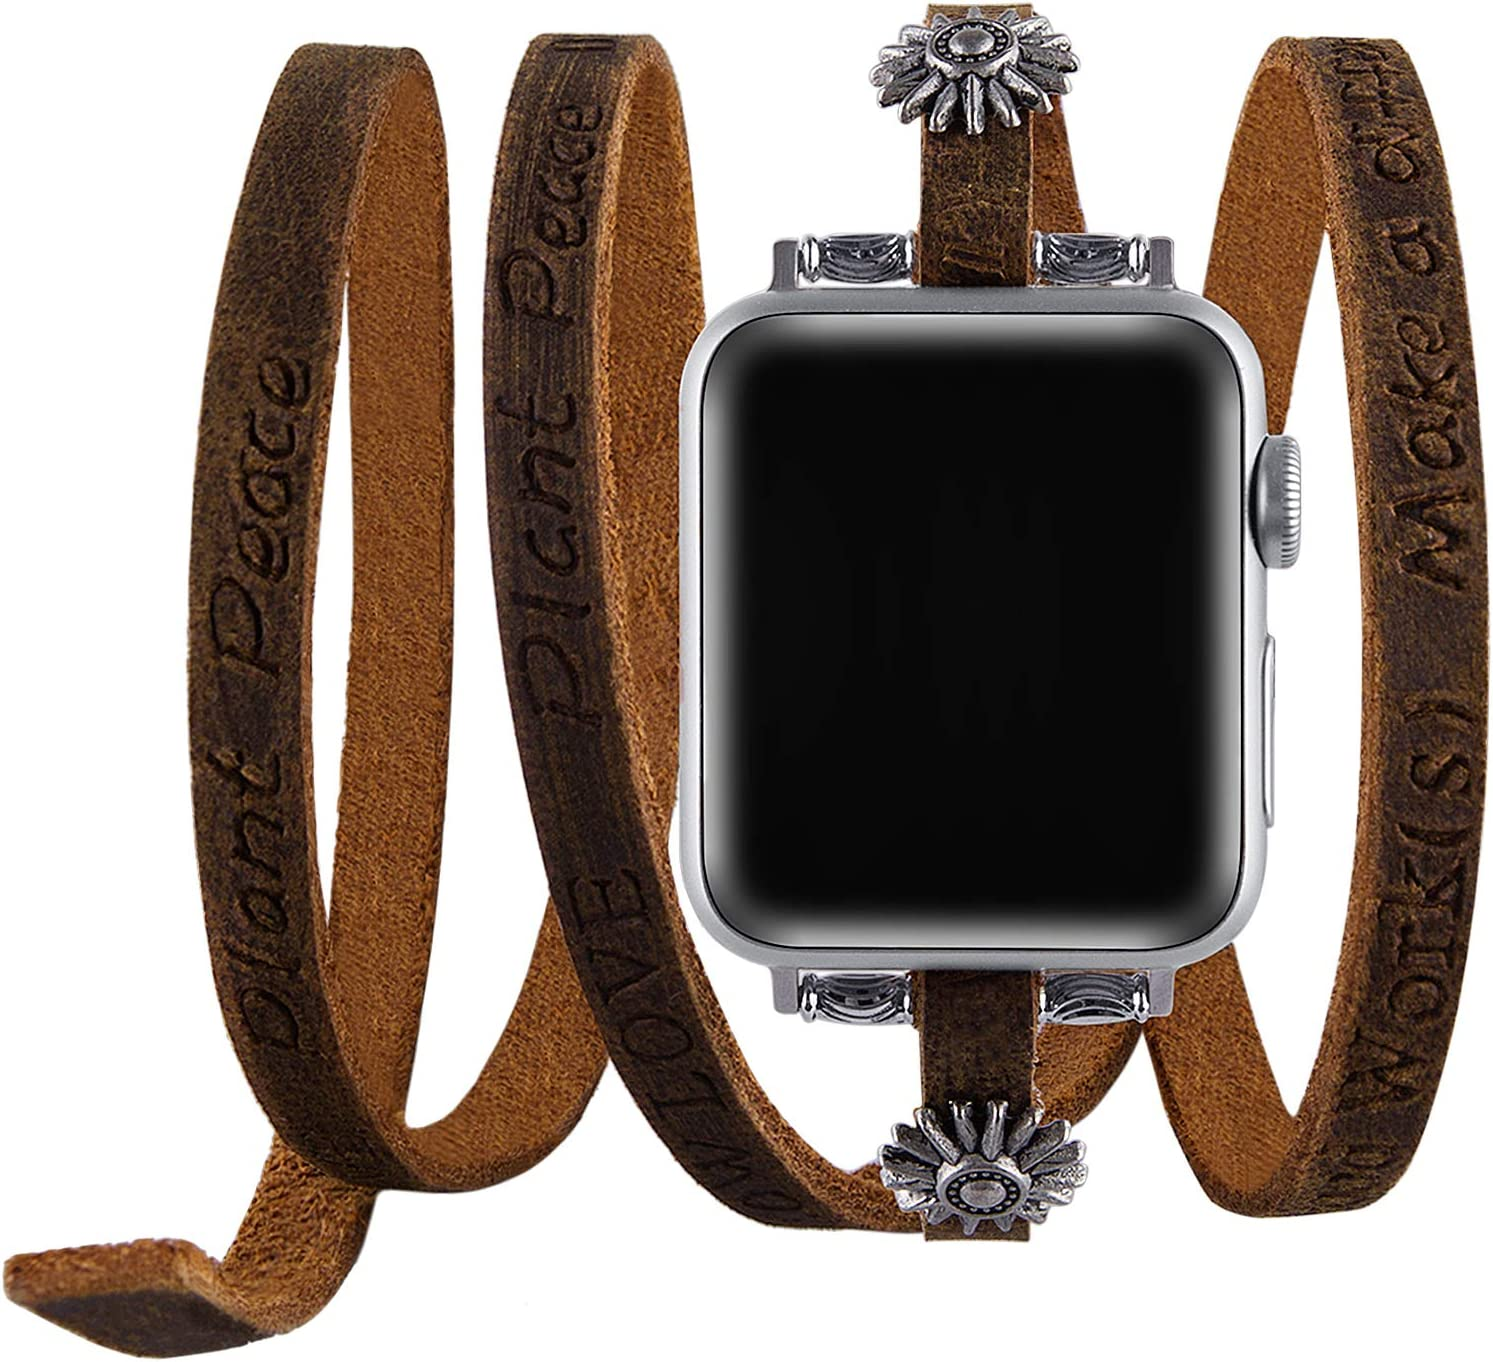 VIQIV Double Wrap Band Compatible with Apple Watch 38mm 40mm 42mm 44mm Iwatch SE & Series 6 5 4 3 2, Unisex Cowboy Leather Bracelet Dressy Jewelry Wristband Strap